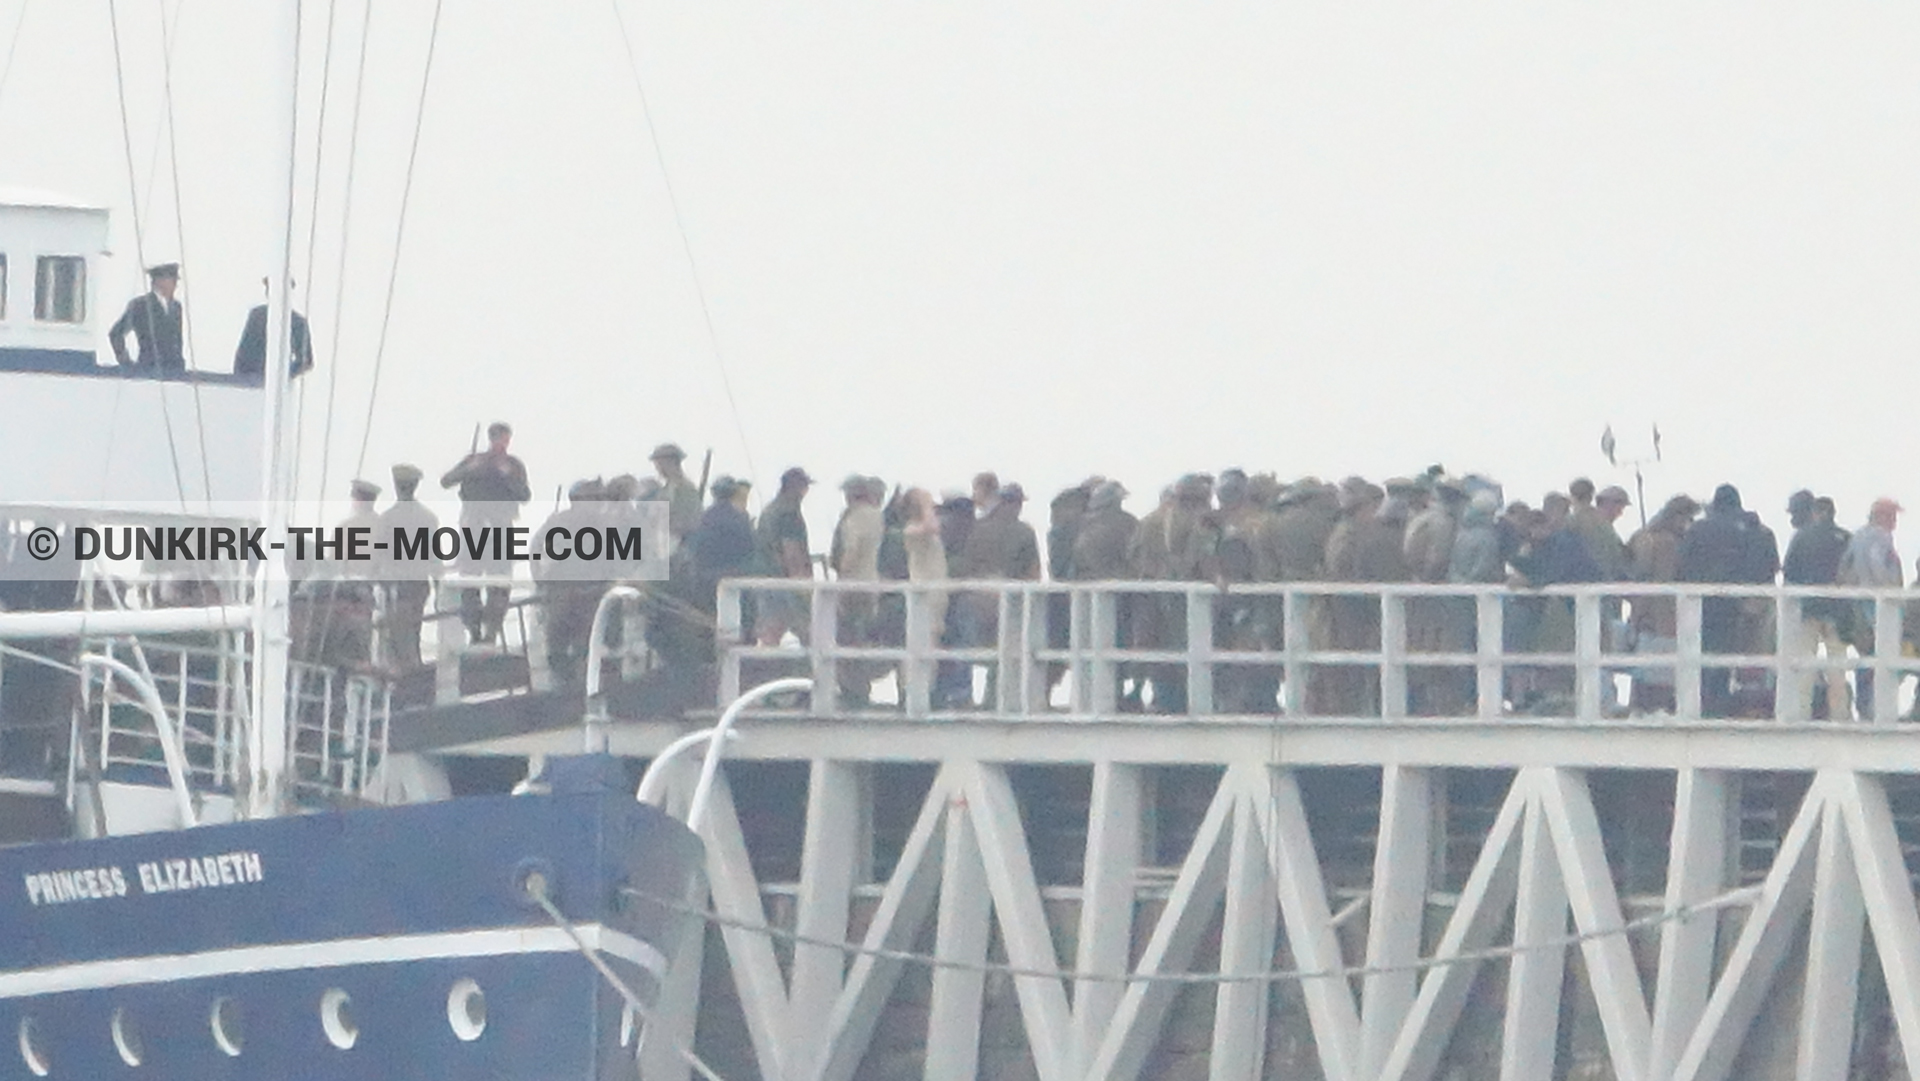 Picture with supernumeraries, EST pier, Princess Elizabeth,  from behind the scene of the Dunkirk movie by Nolan